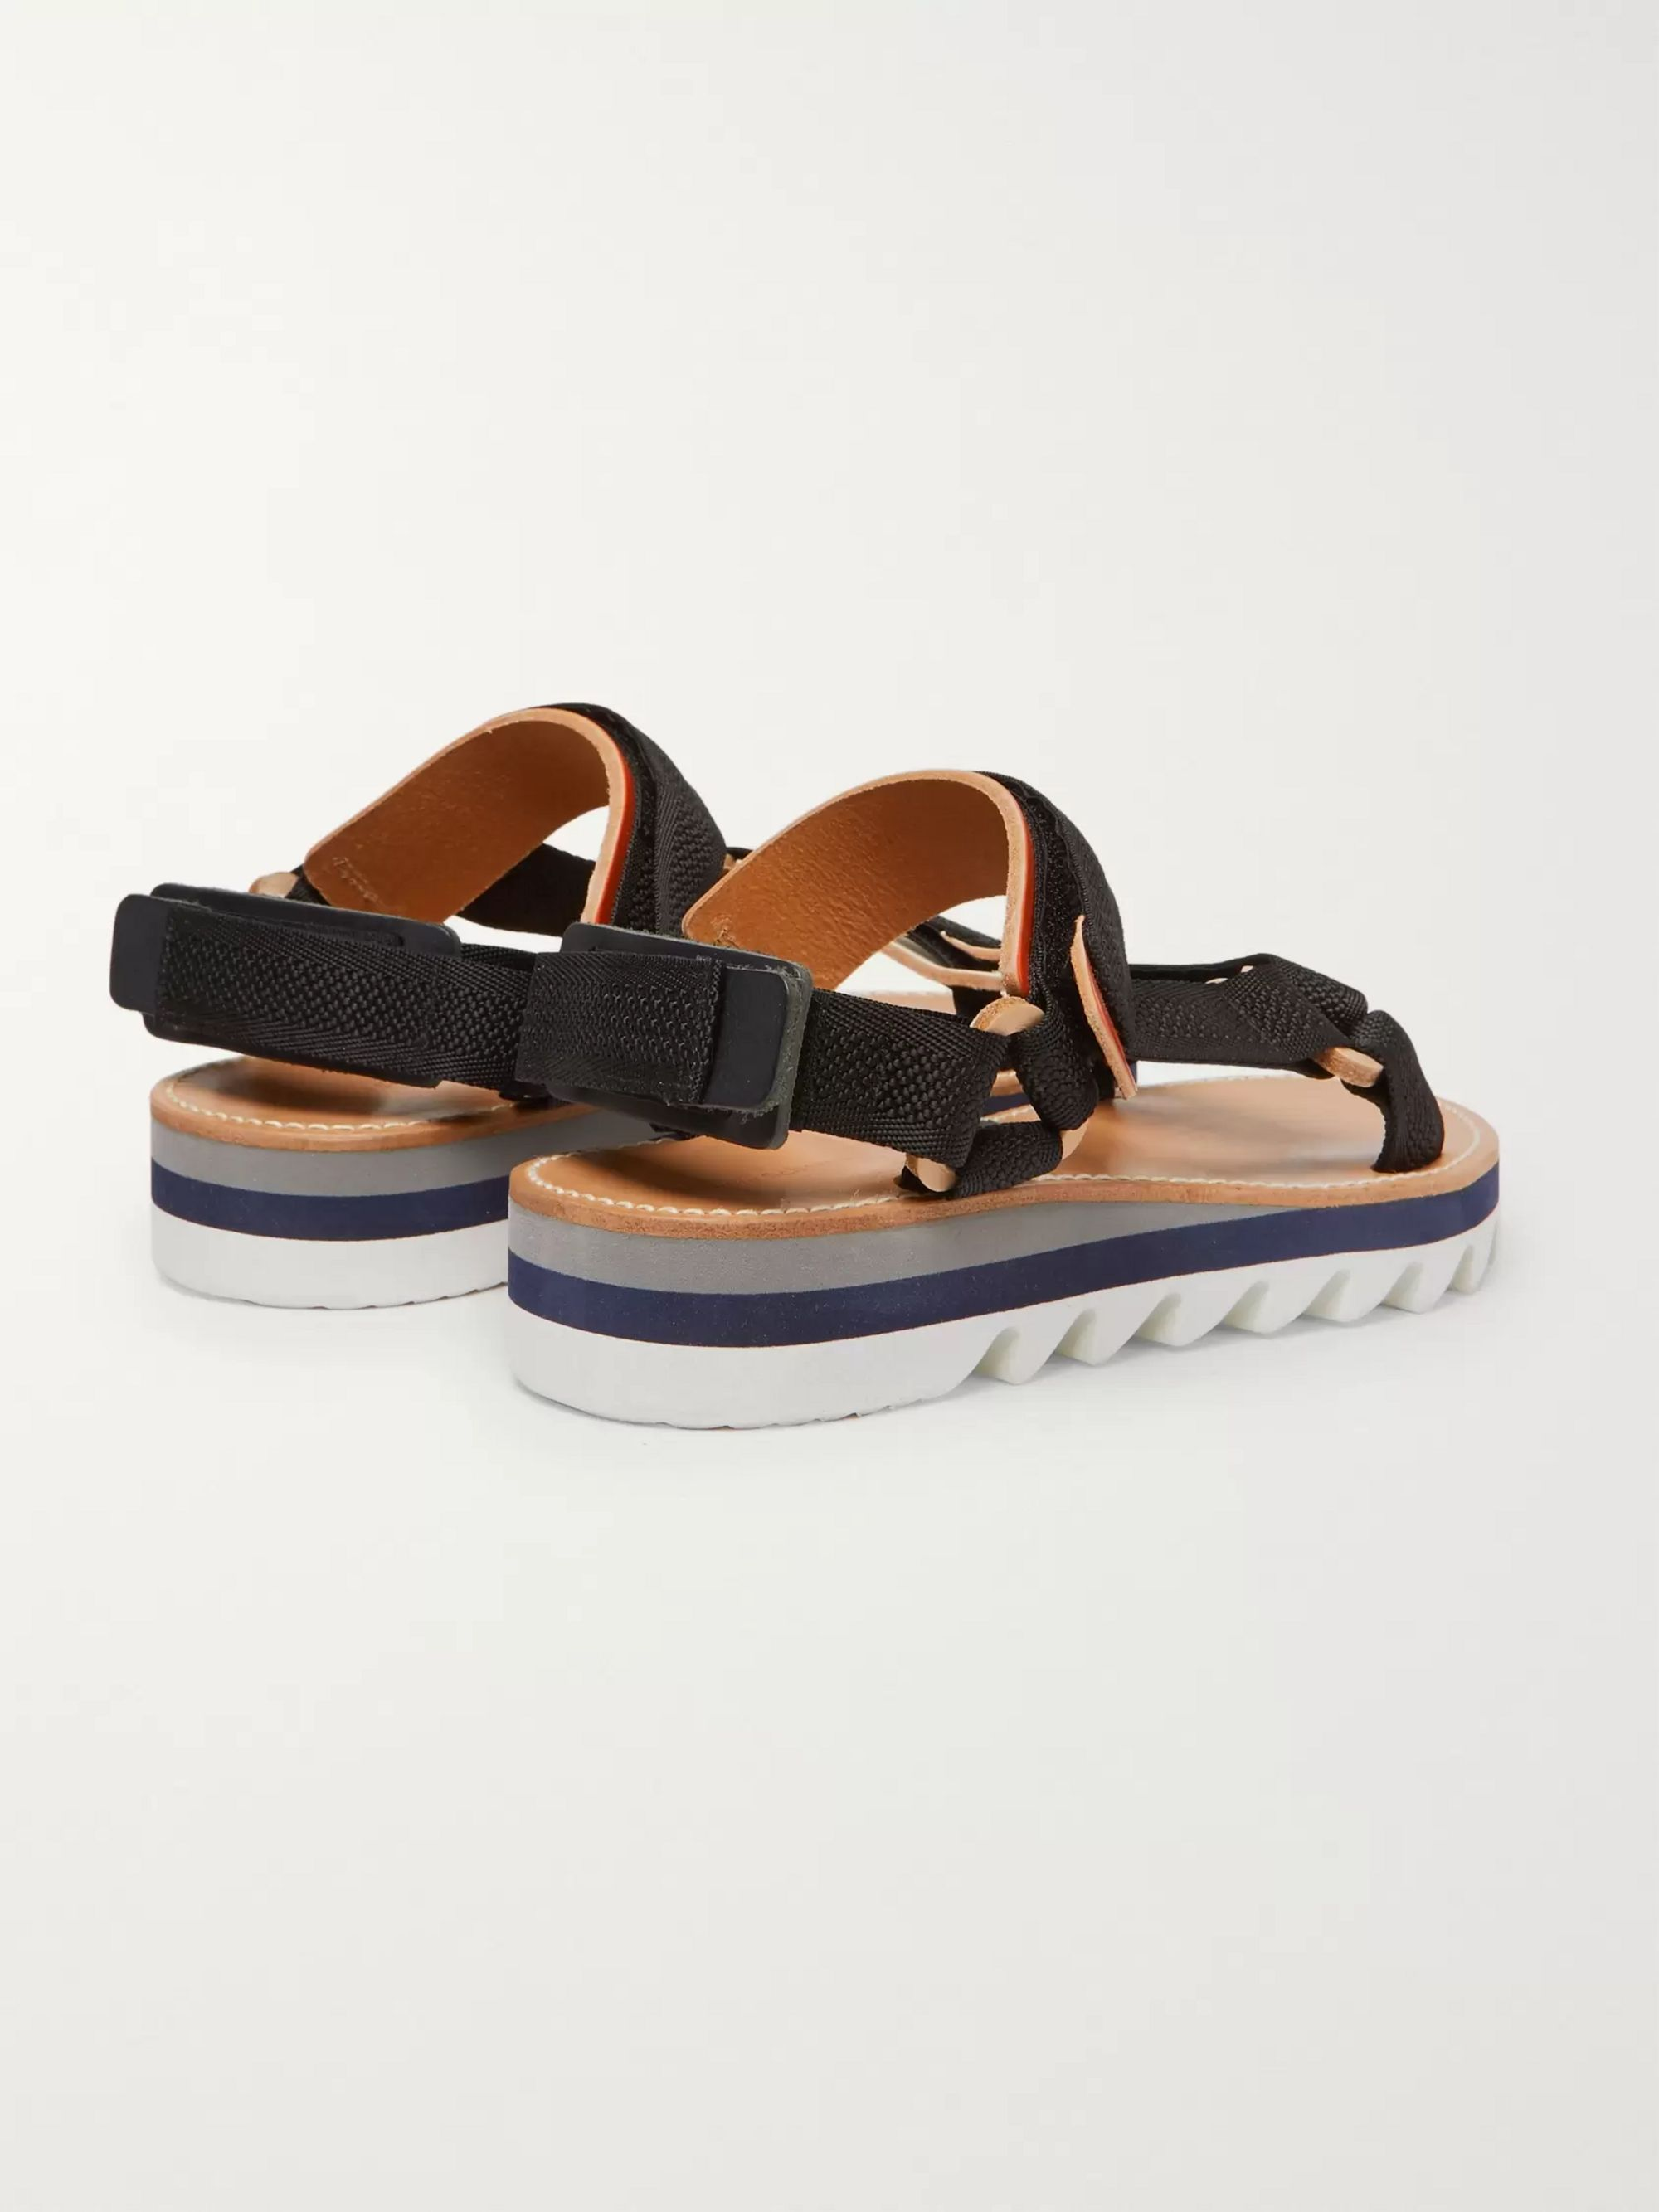 Hender Scheme Leather-Trimmed Webbing Sandals